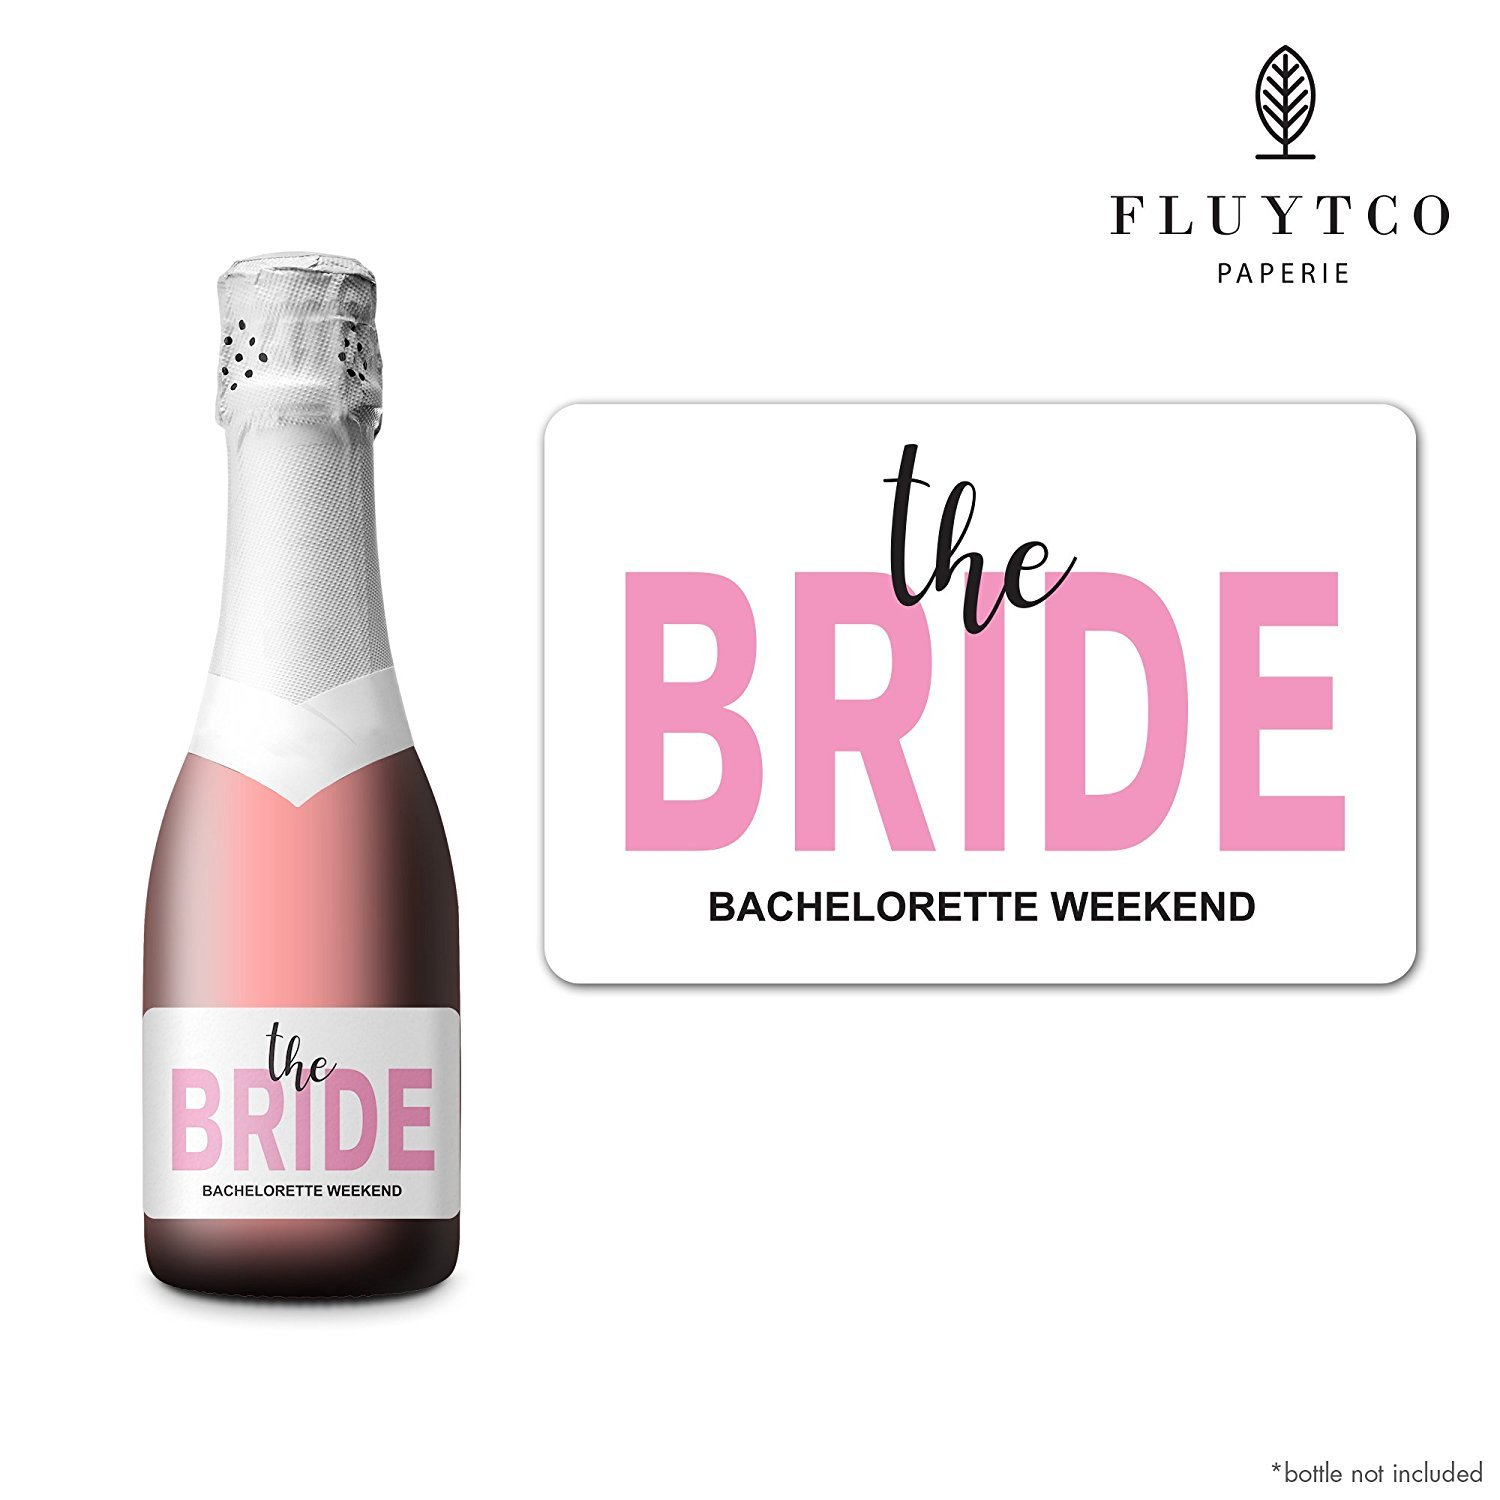 Bridesmaid Maid /& Matron of Honor Proposal Gift- Engagement Party- Bridal Shower Set of 20 Bachelorette Mini Champagne Bottle /& Gift Box Label Stickers BRIDE TRIBE